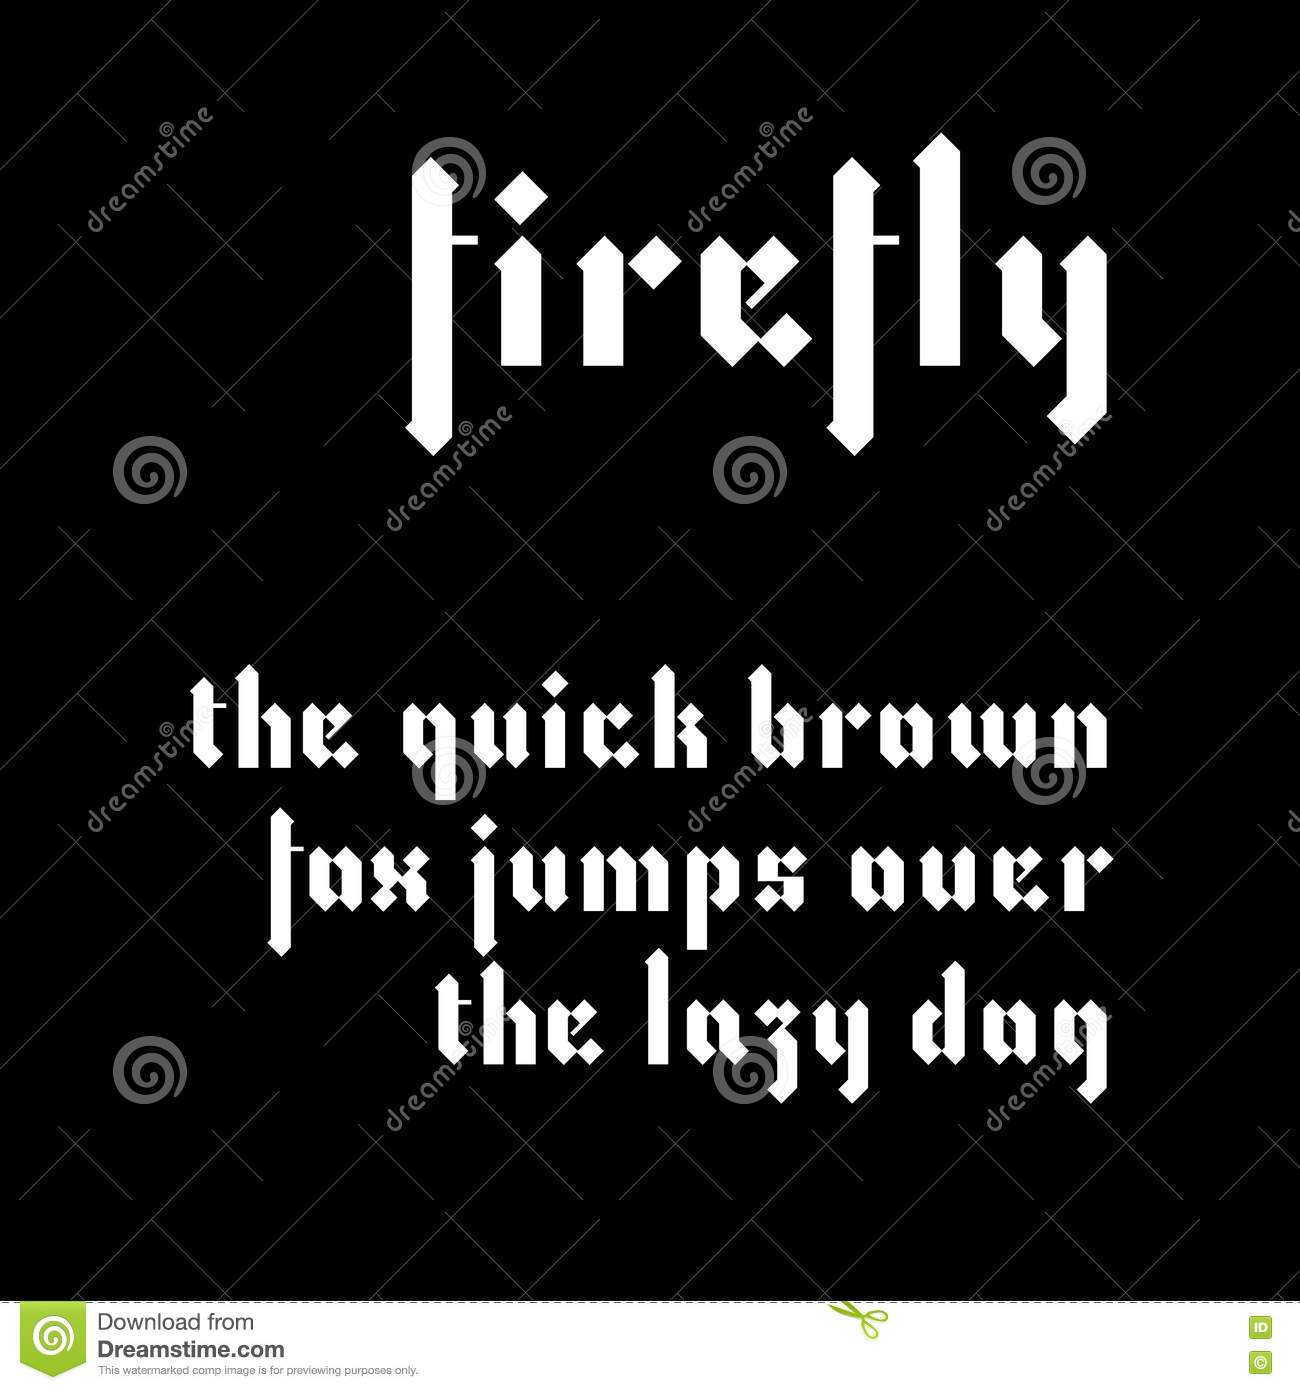 Firefly hand drawn font free download.